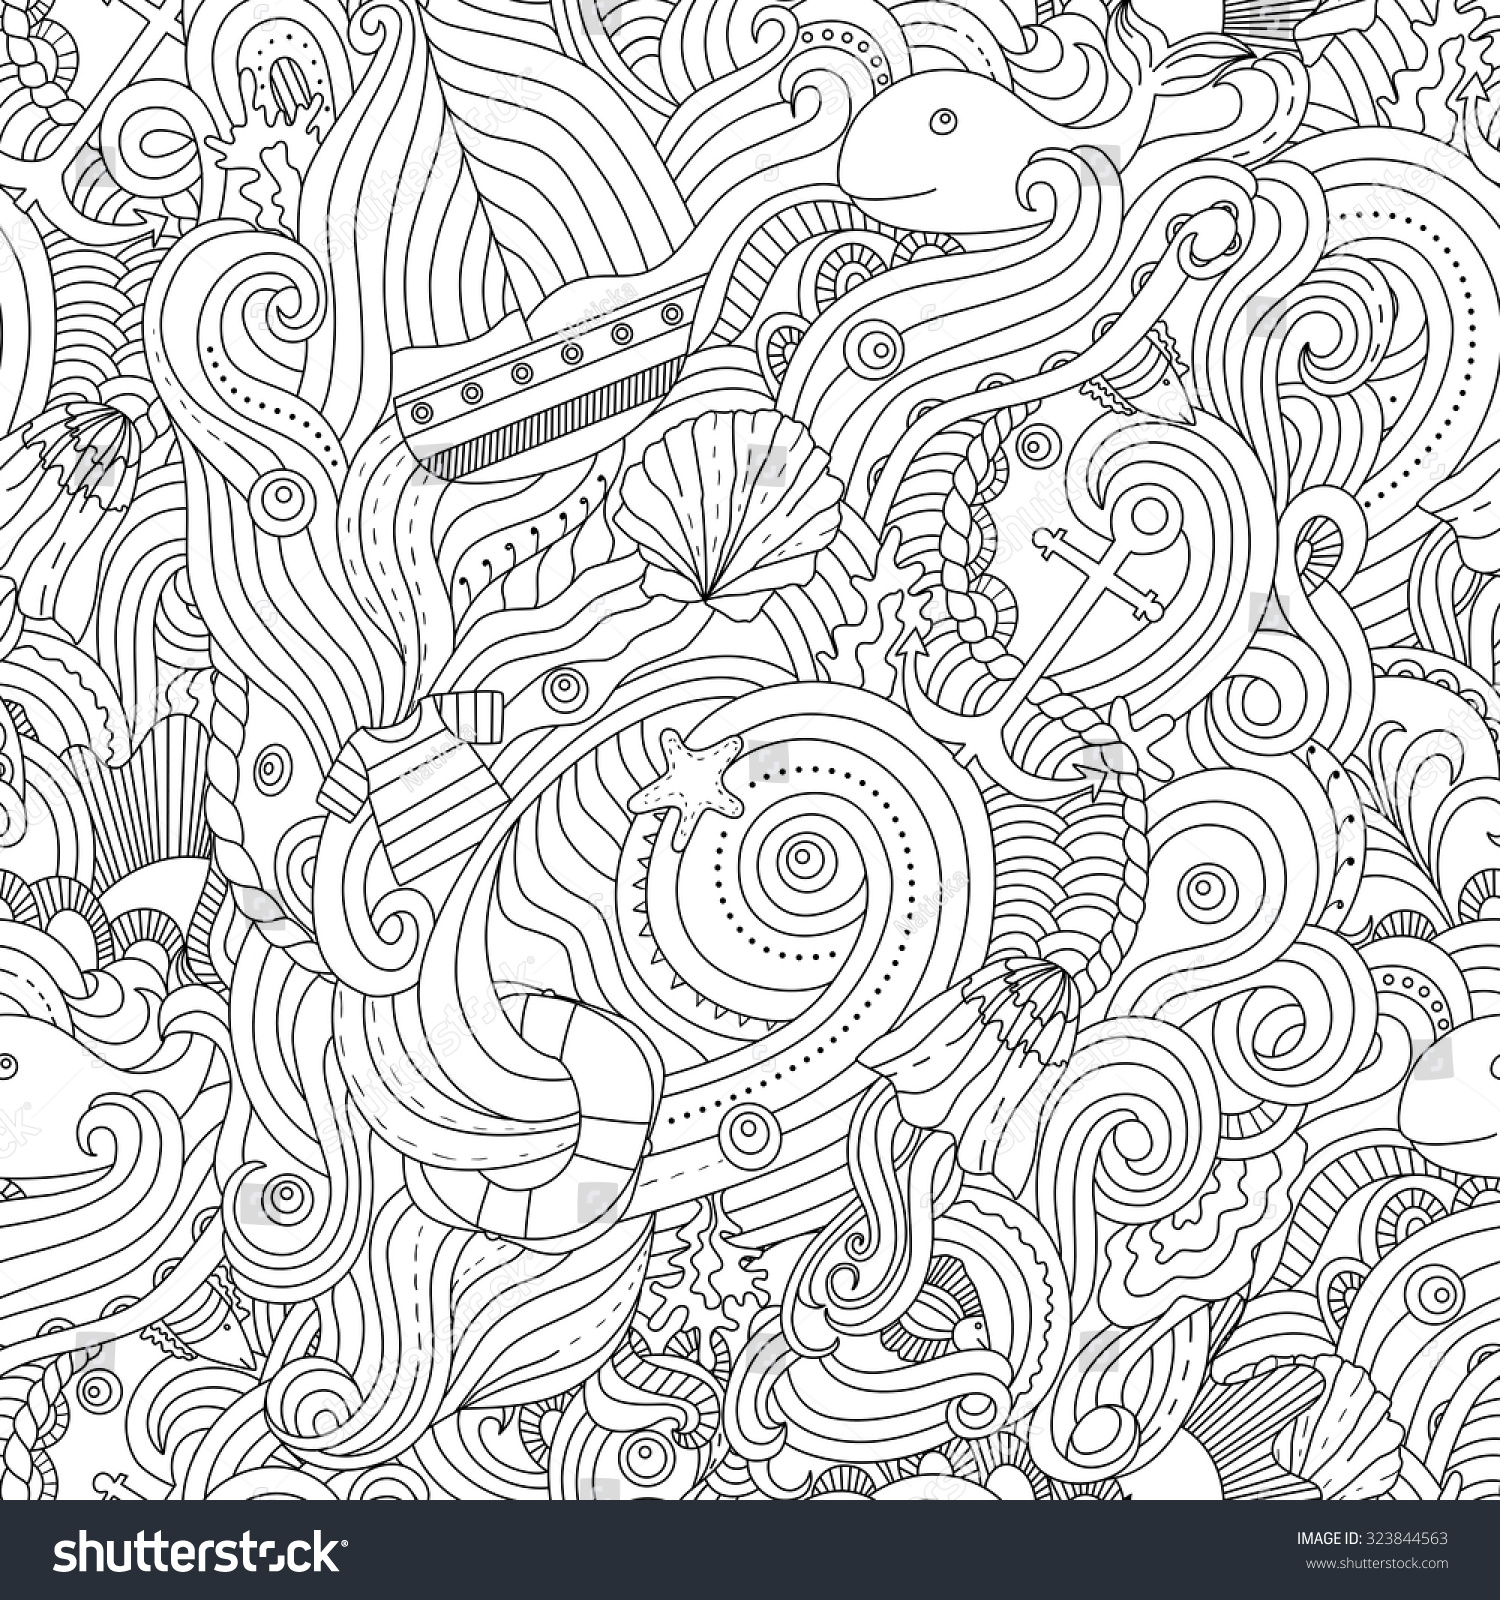 Nautical pattern adult coloring page stock vector for Nautical coloring pages